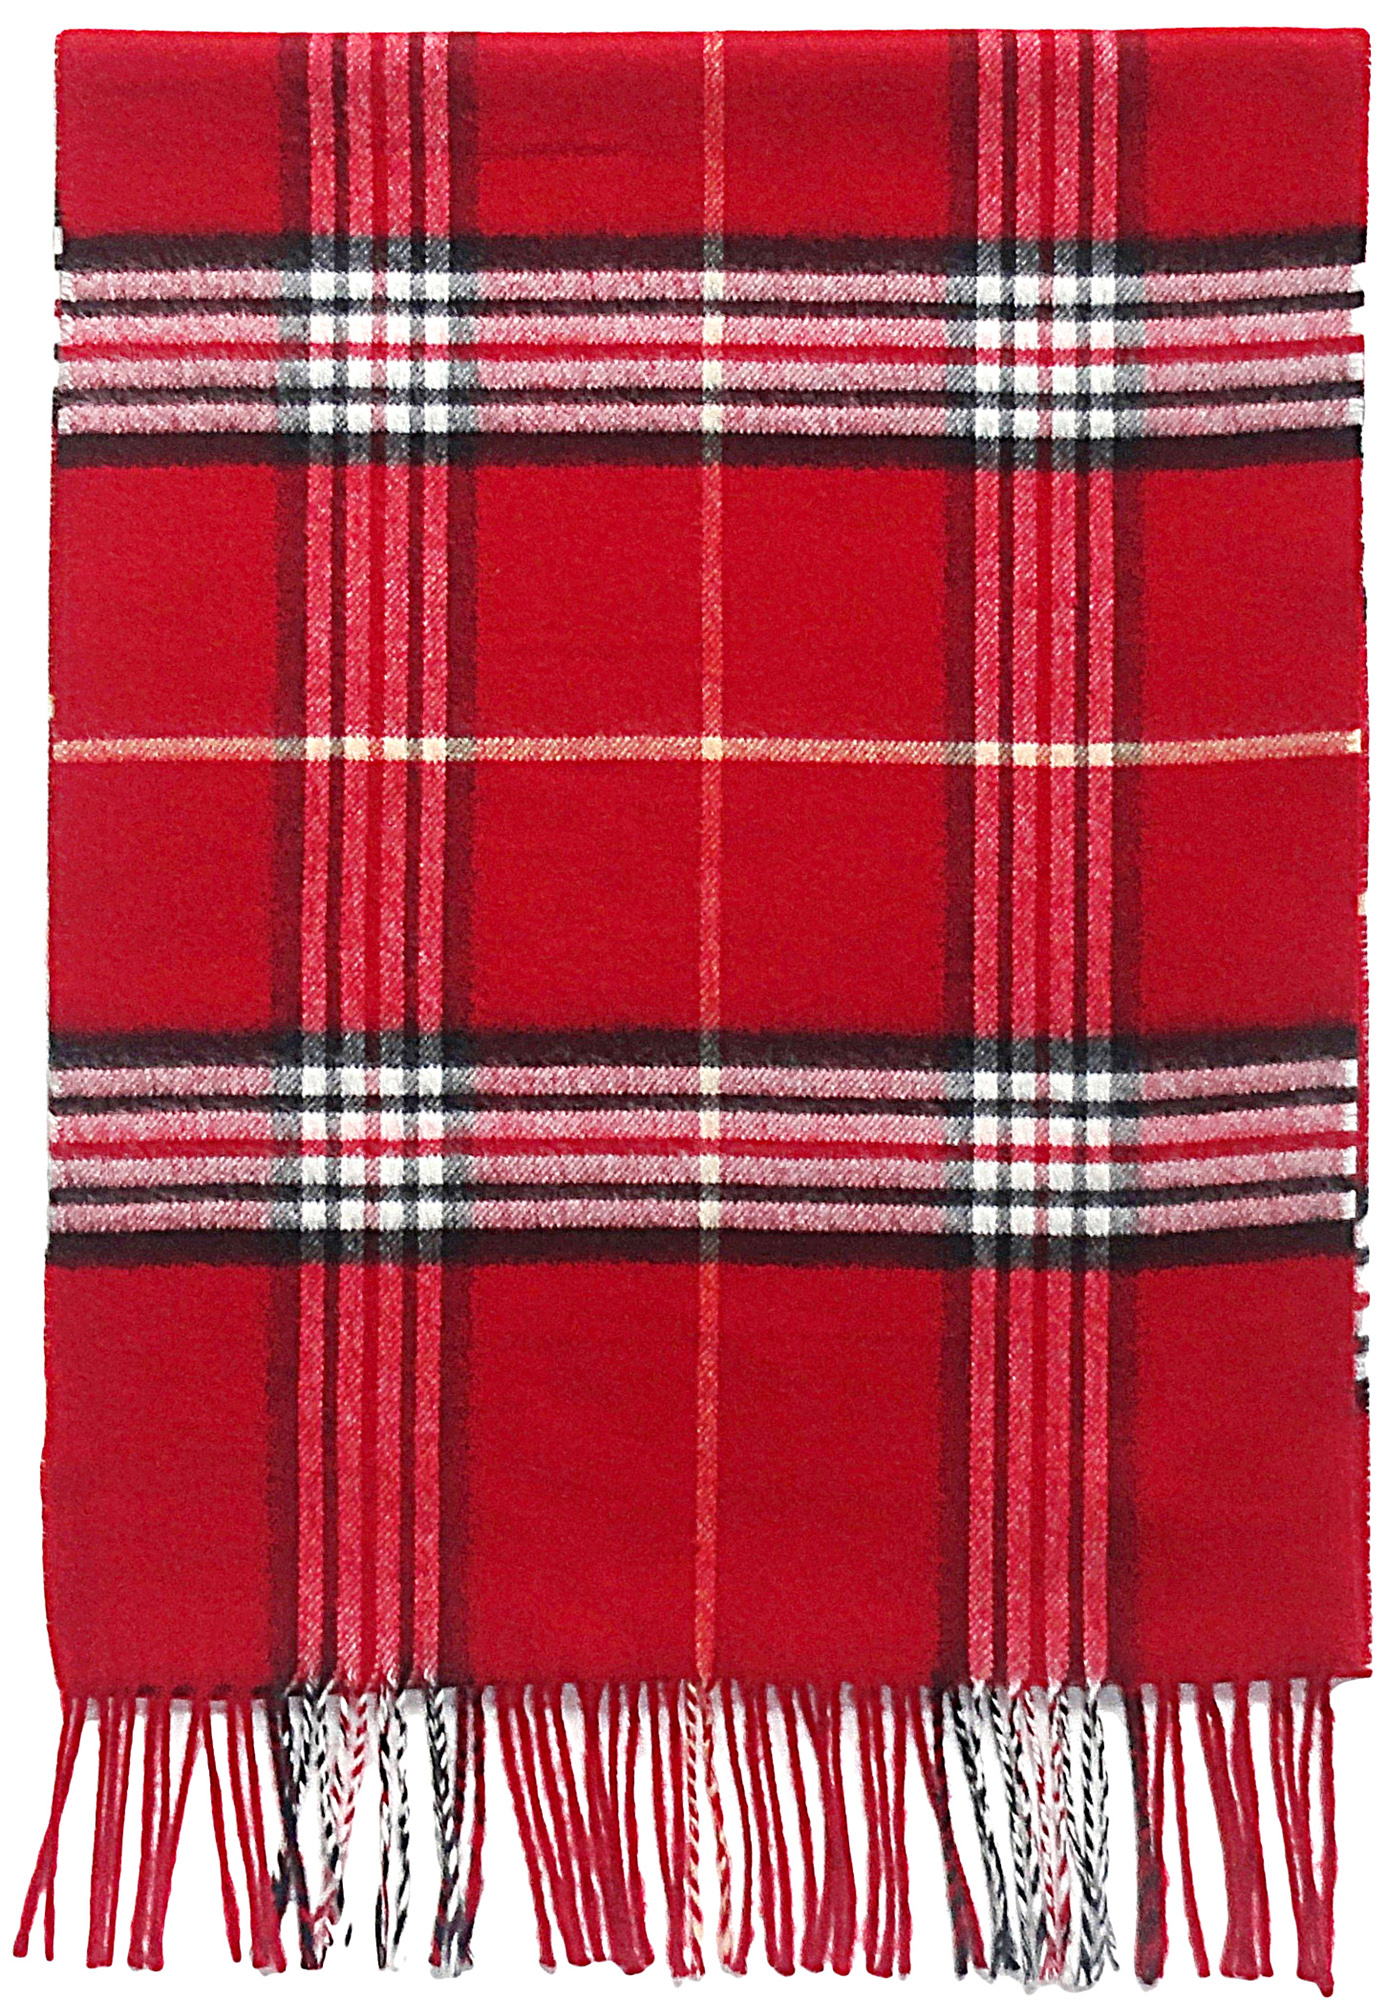 Fraas Plaid in Red- $35.00 Cashmink, Made in Germany 7718990809604